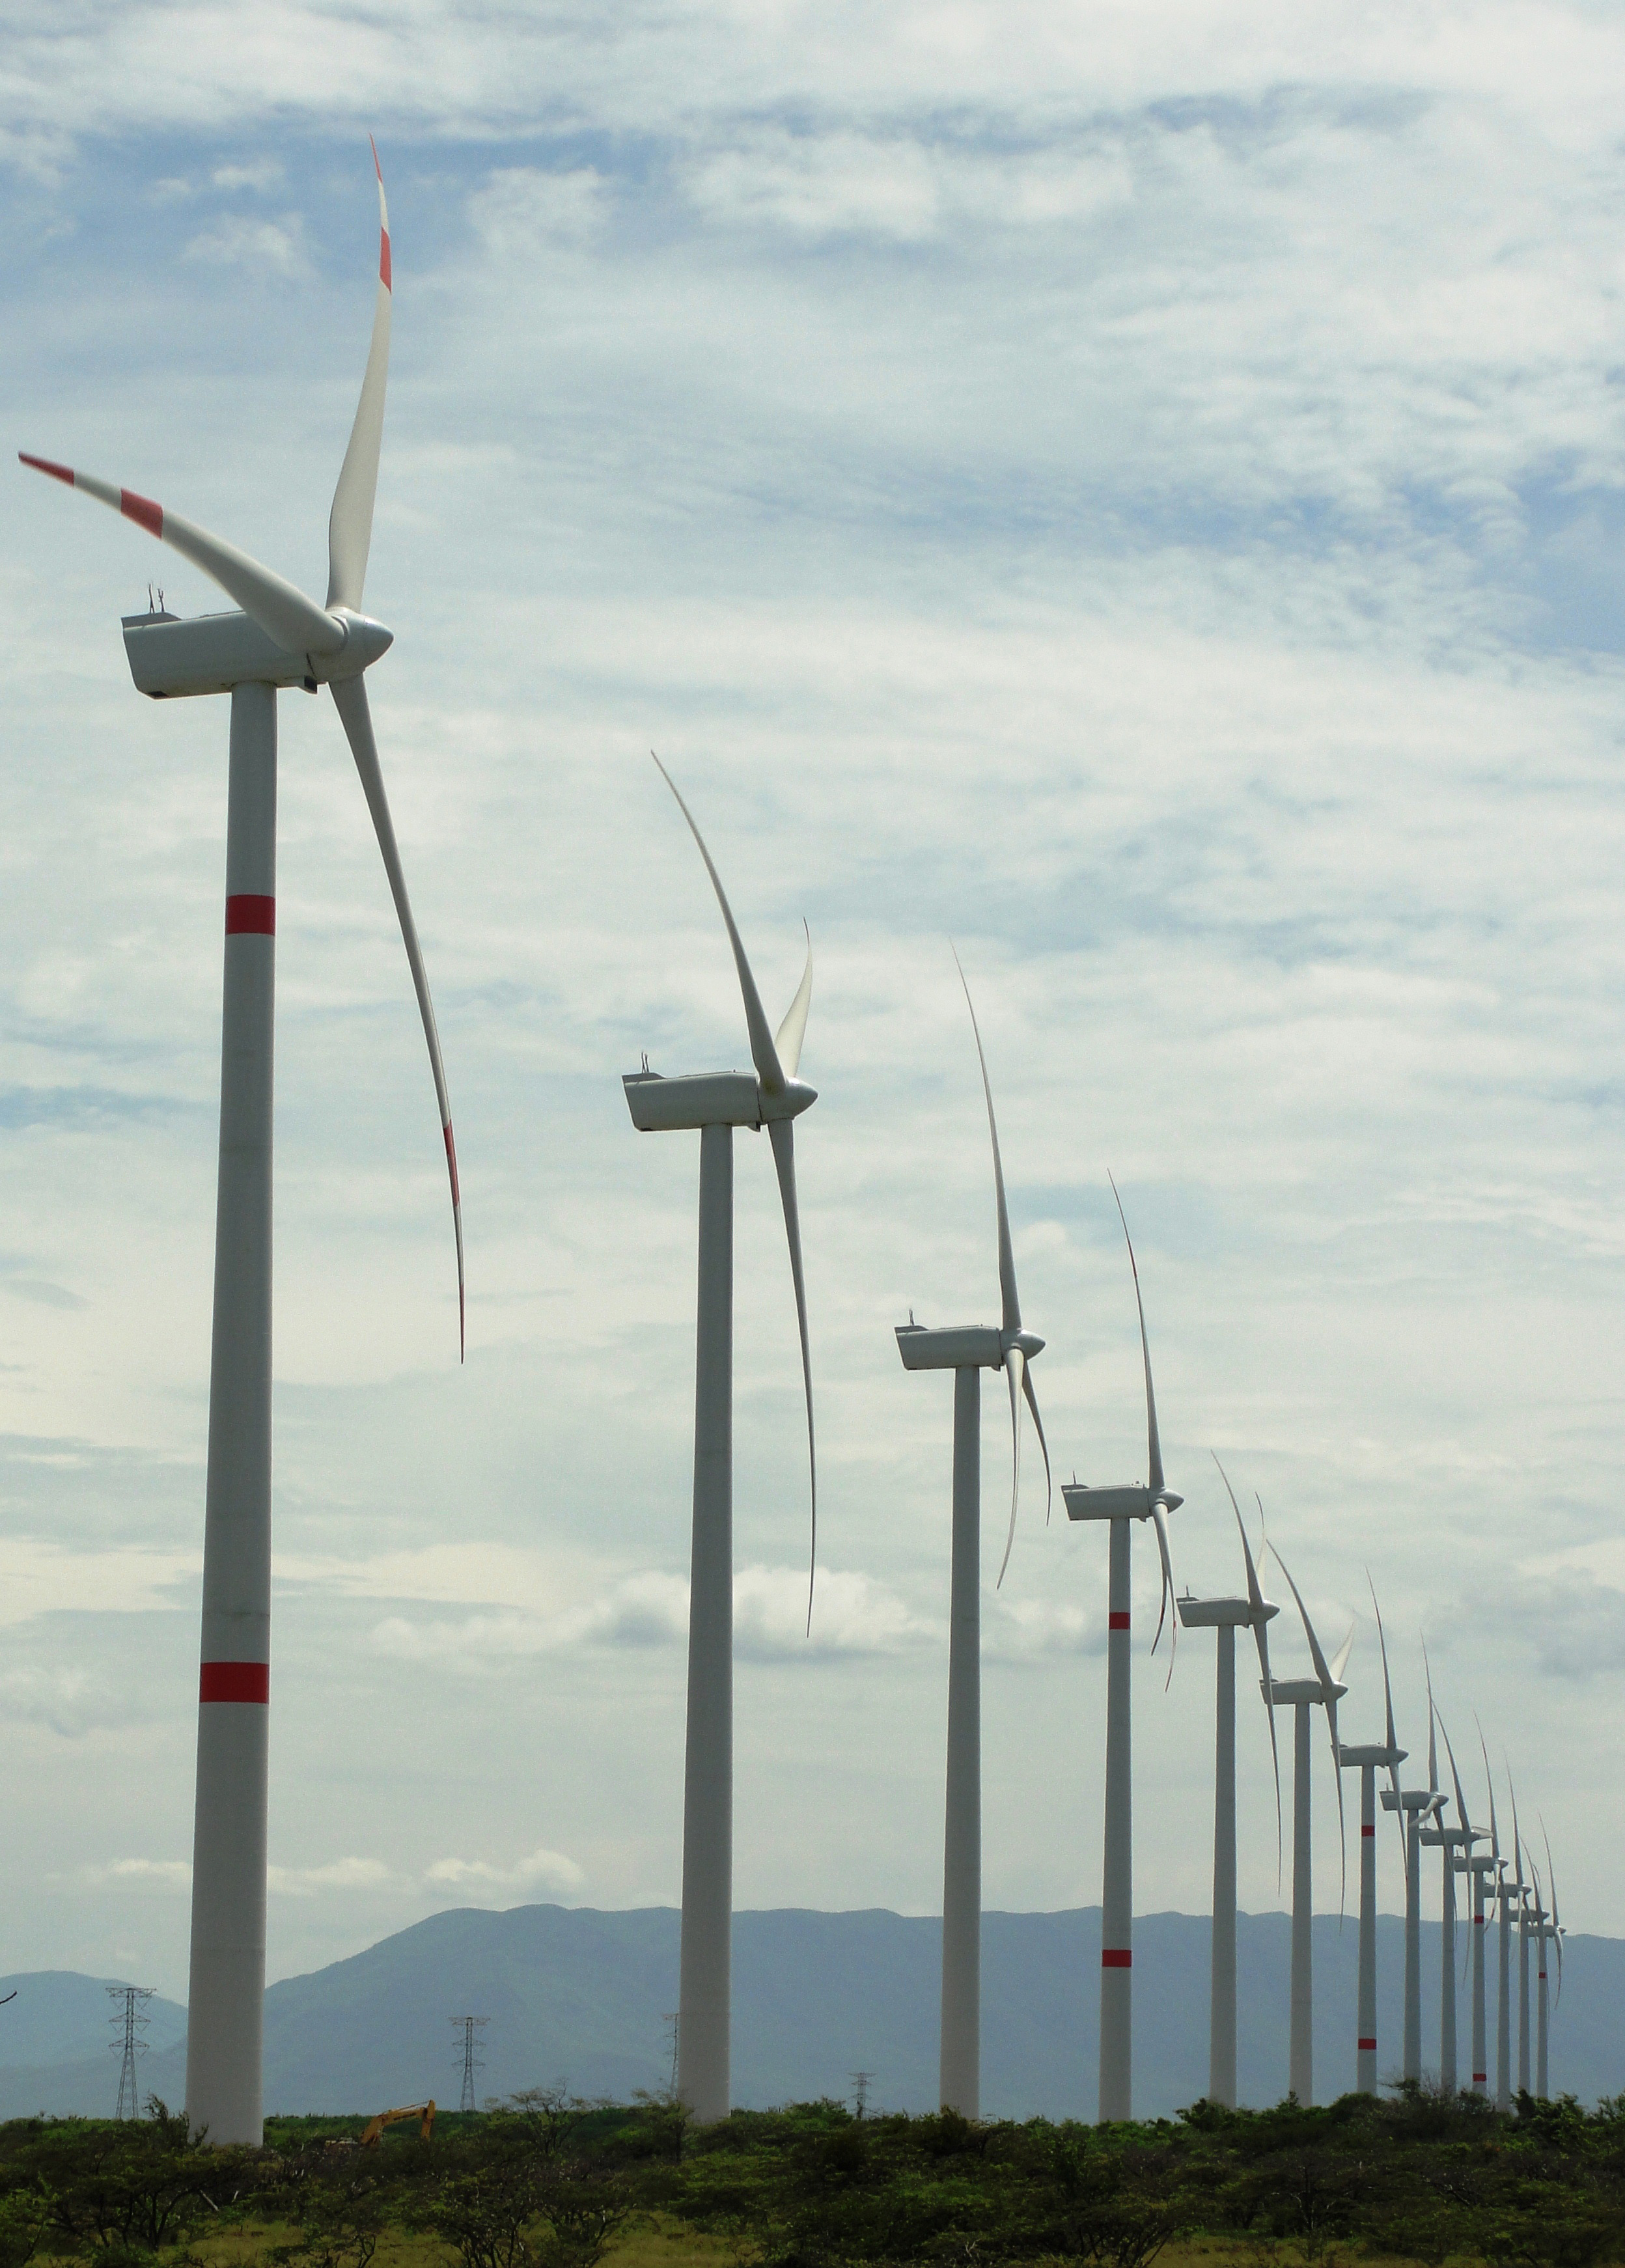 Wind Power To Debut On Gms Renewable Energy Roster